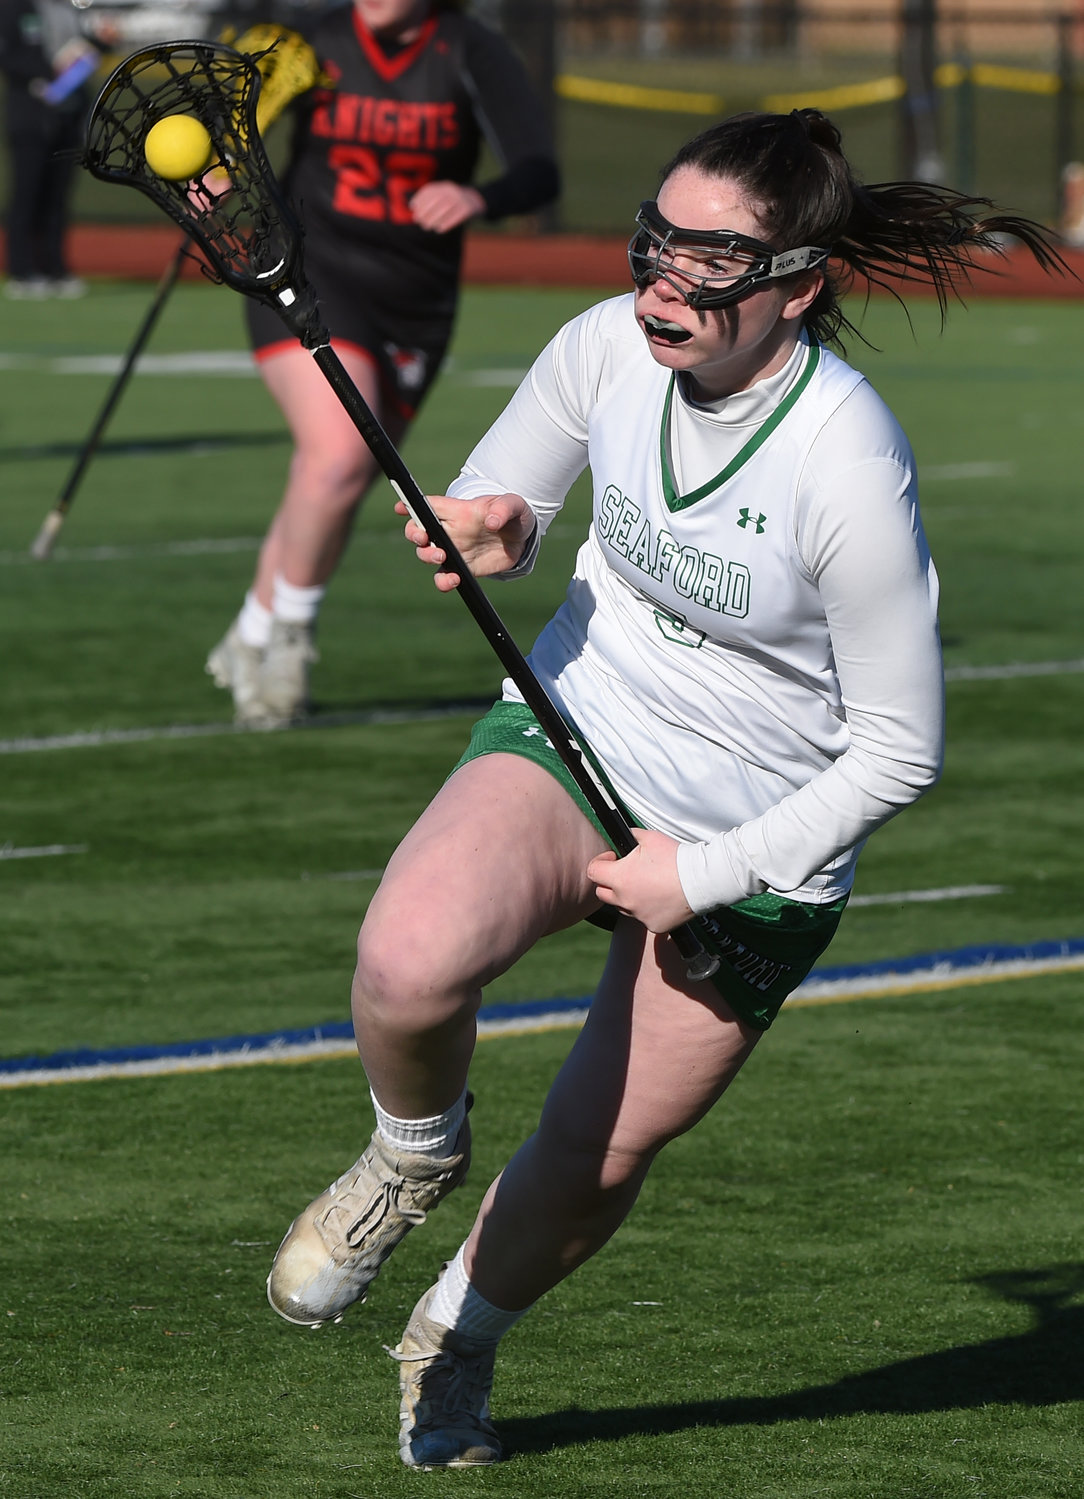 Attack Caitlin Costello is part of a talented senior class for the Lady Vikings and entered this week's action with 11 goals, including a hat trick against Floral Park.